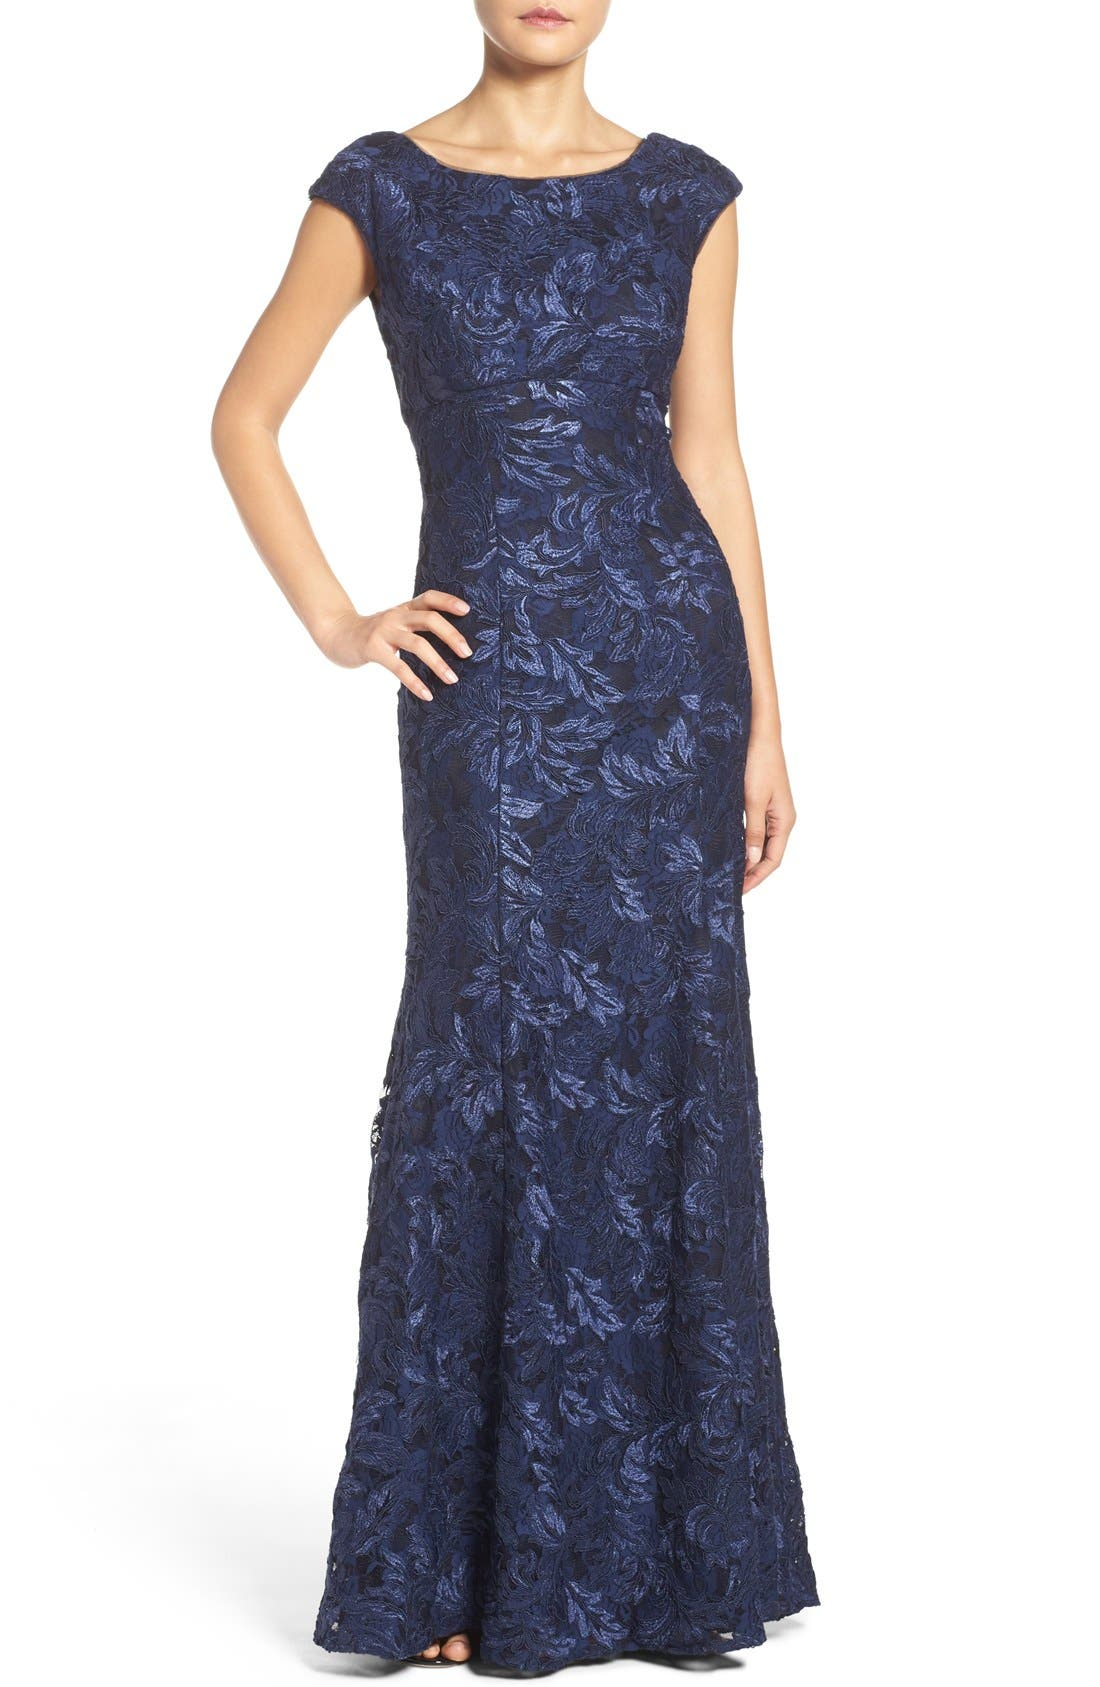 Main Image - Xscape Embroidered Lace Mermaid Gown (Regular & Petite)